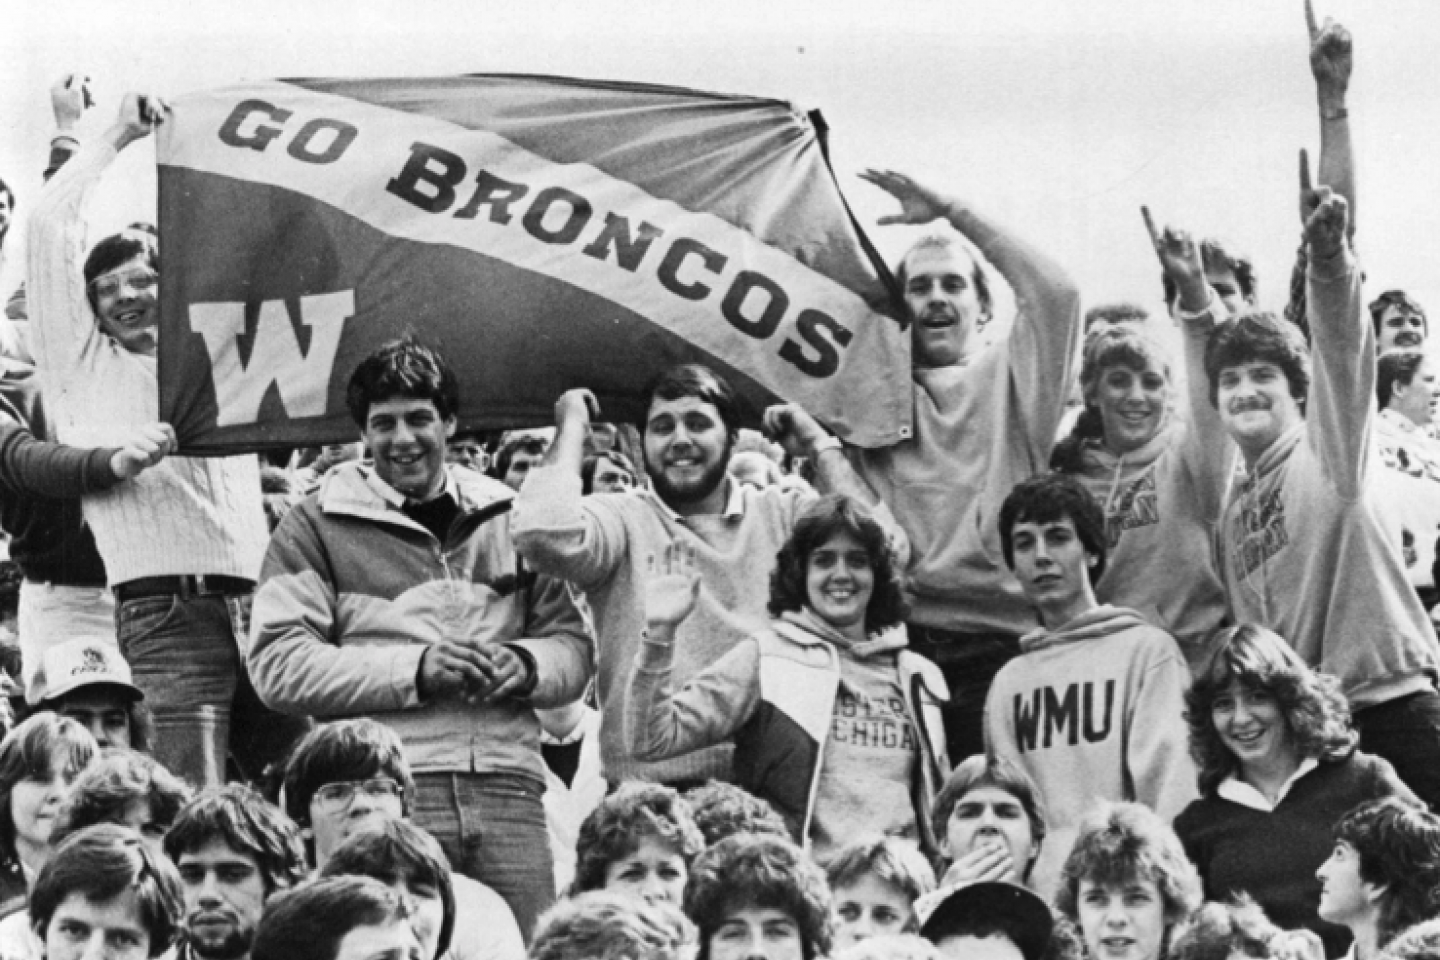 """Bronco fans holding up a flag that says """"Go Broncos"""" in 1982."""